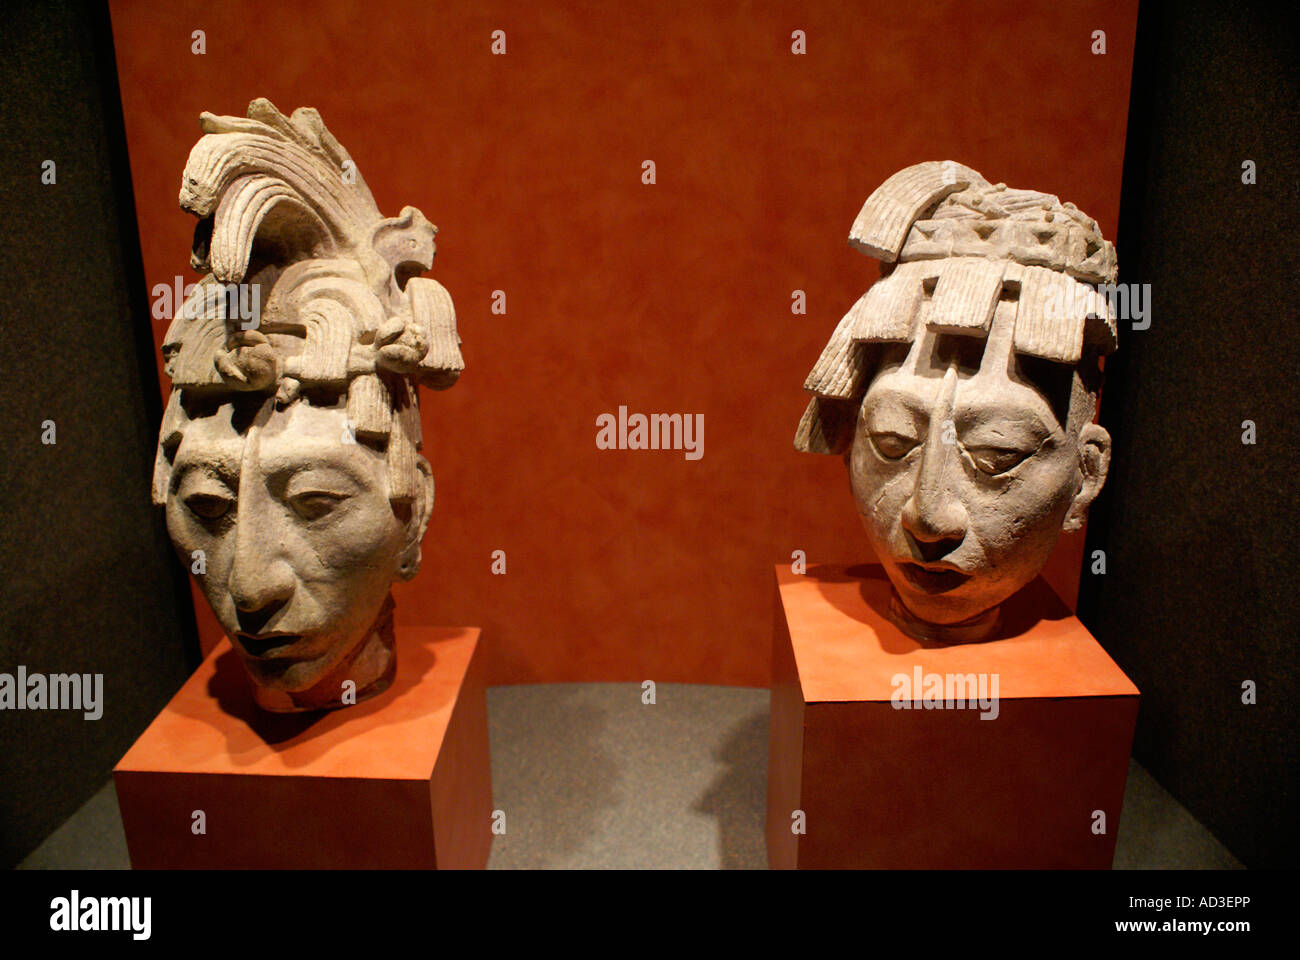 Mayan stucco heads of Lord Pakal from Palenque, Mexico, National Museum of Anthropology, Mexico City. - Stock Image